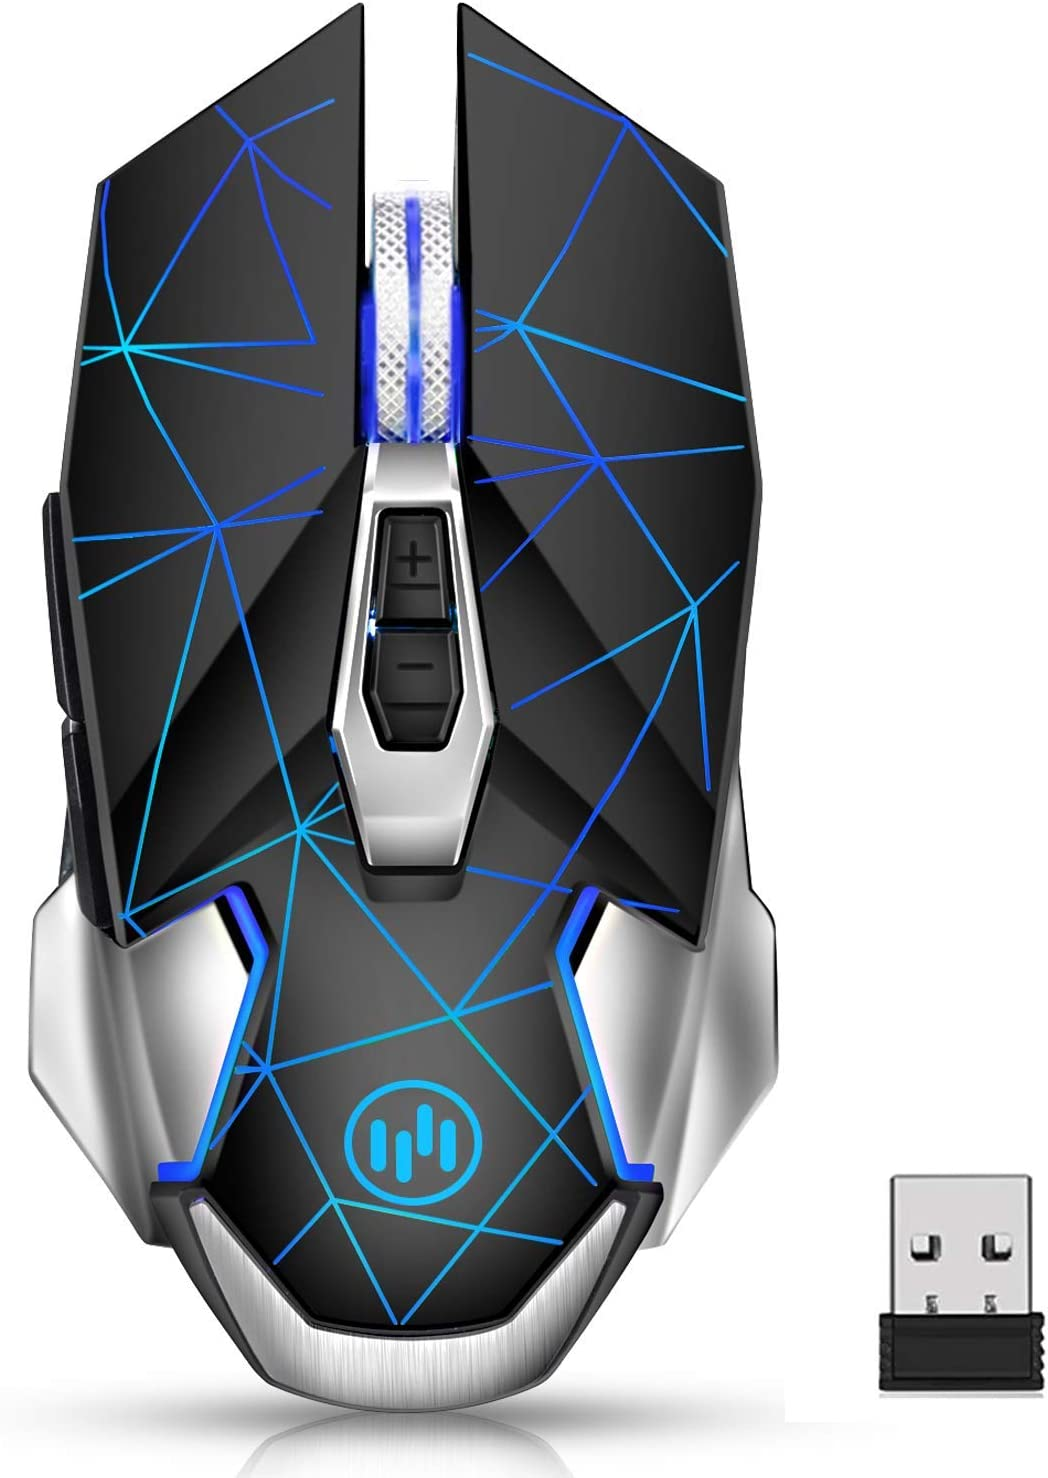 Wireless Gaming Mouse, VEGCOO C8 Silent Click Wireless Rechargeable Mouse with Colorful LED Lights and 2400/1600/1000 DPI 400mah Lithium Battery for Laptop and Computer (C20 Black)